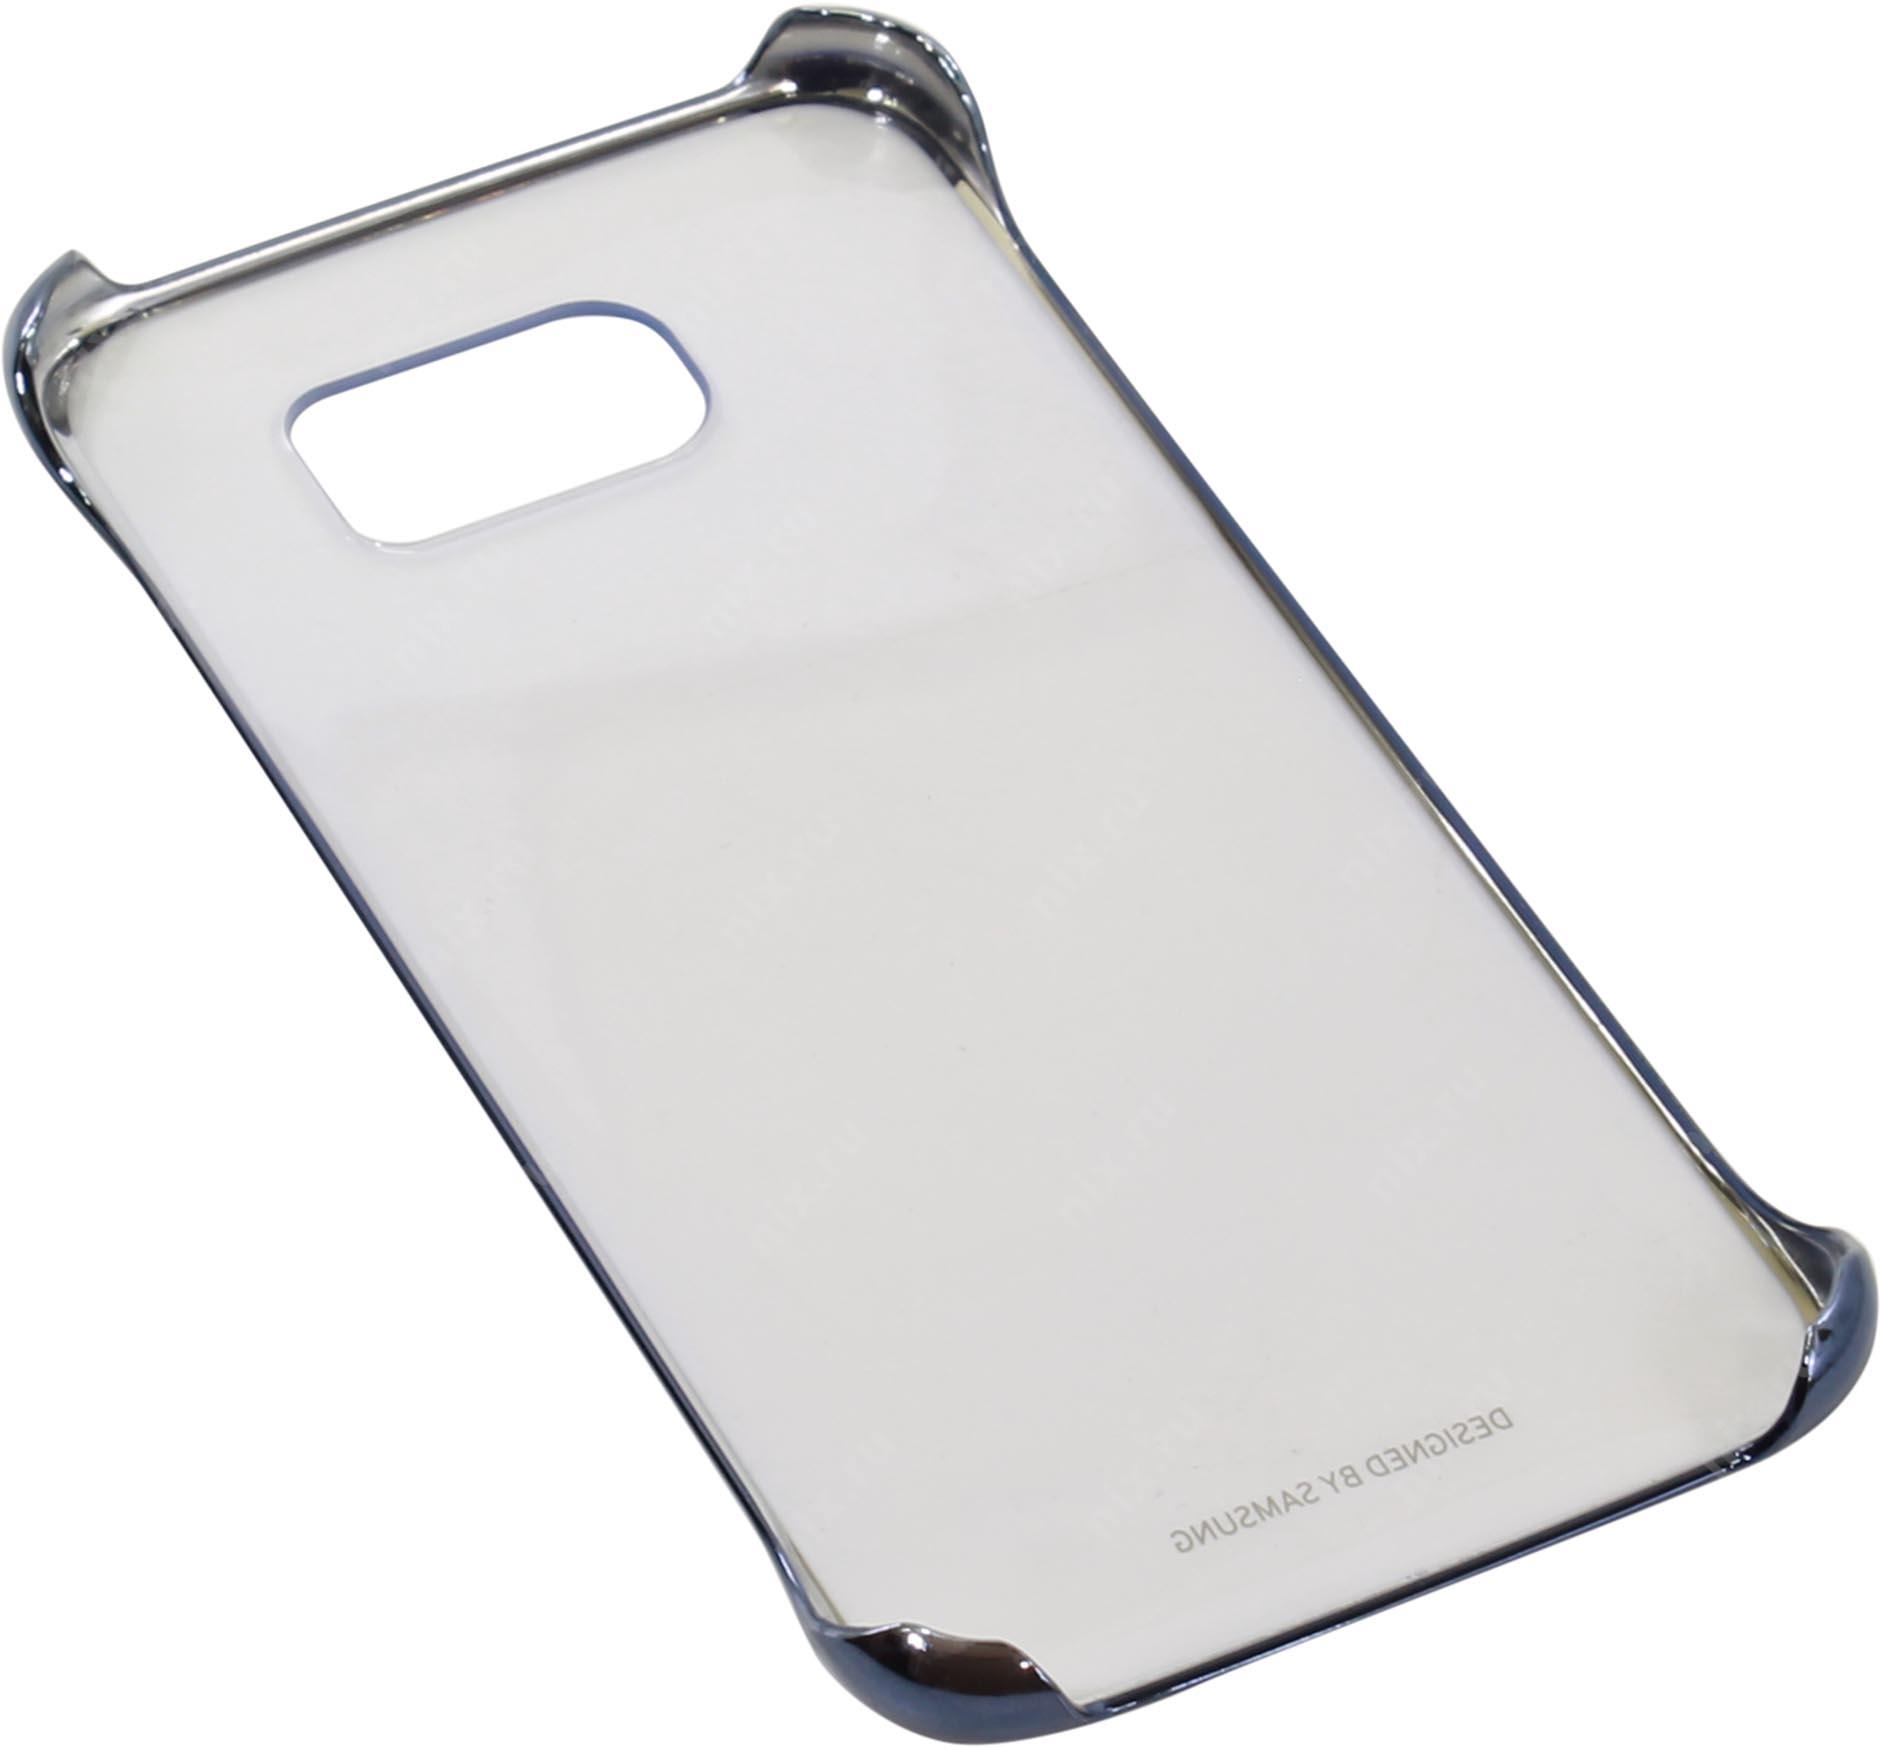 Samsung ��� Galaxy S6 Clear View Cover ������